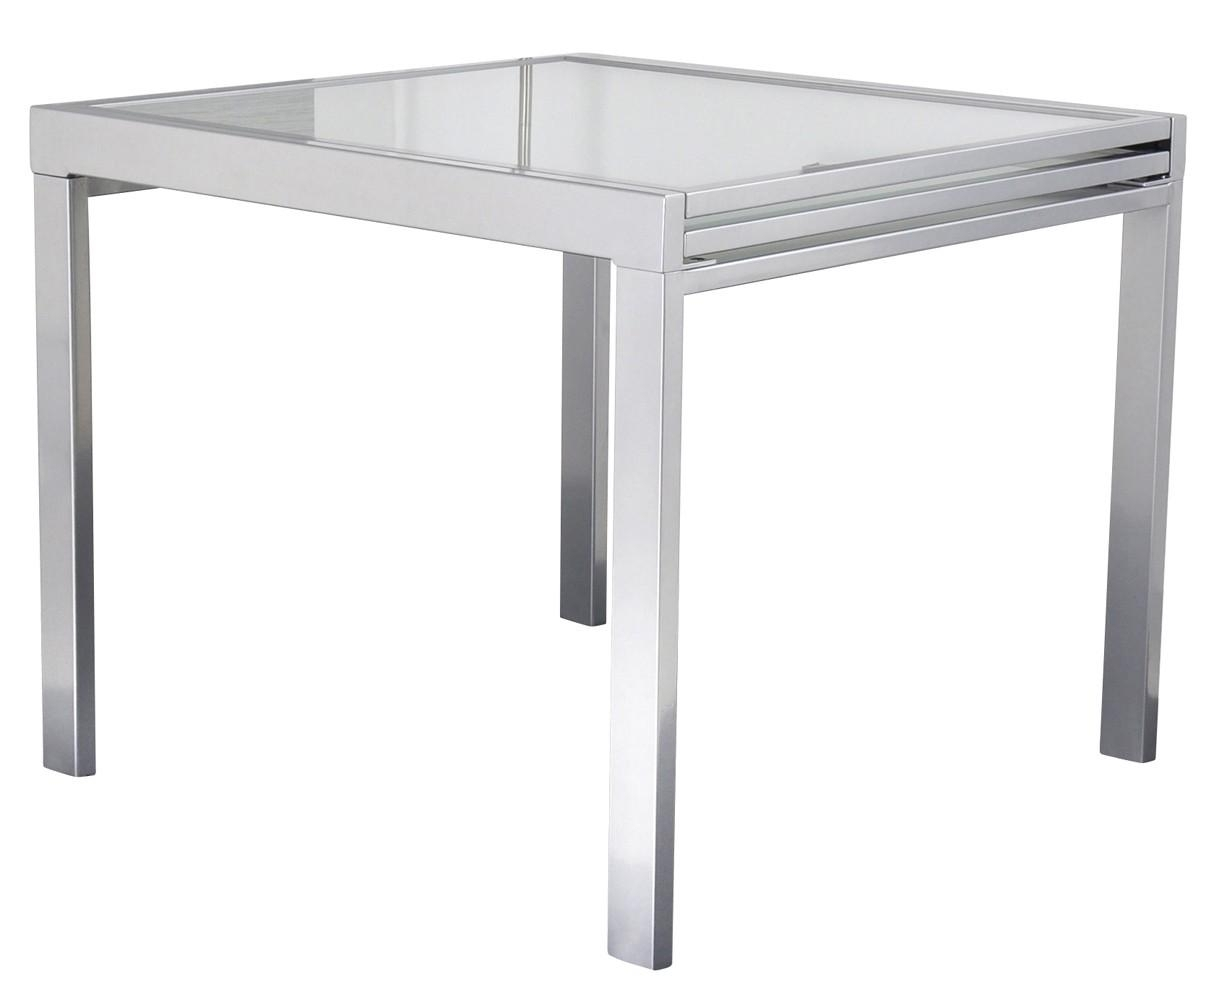 Les tendances table carr e extensible grise - Table en verre carree ...